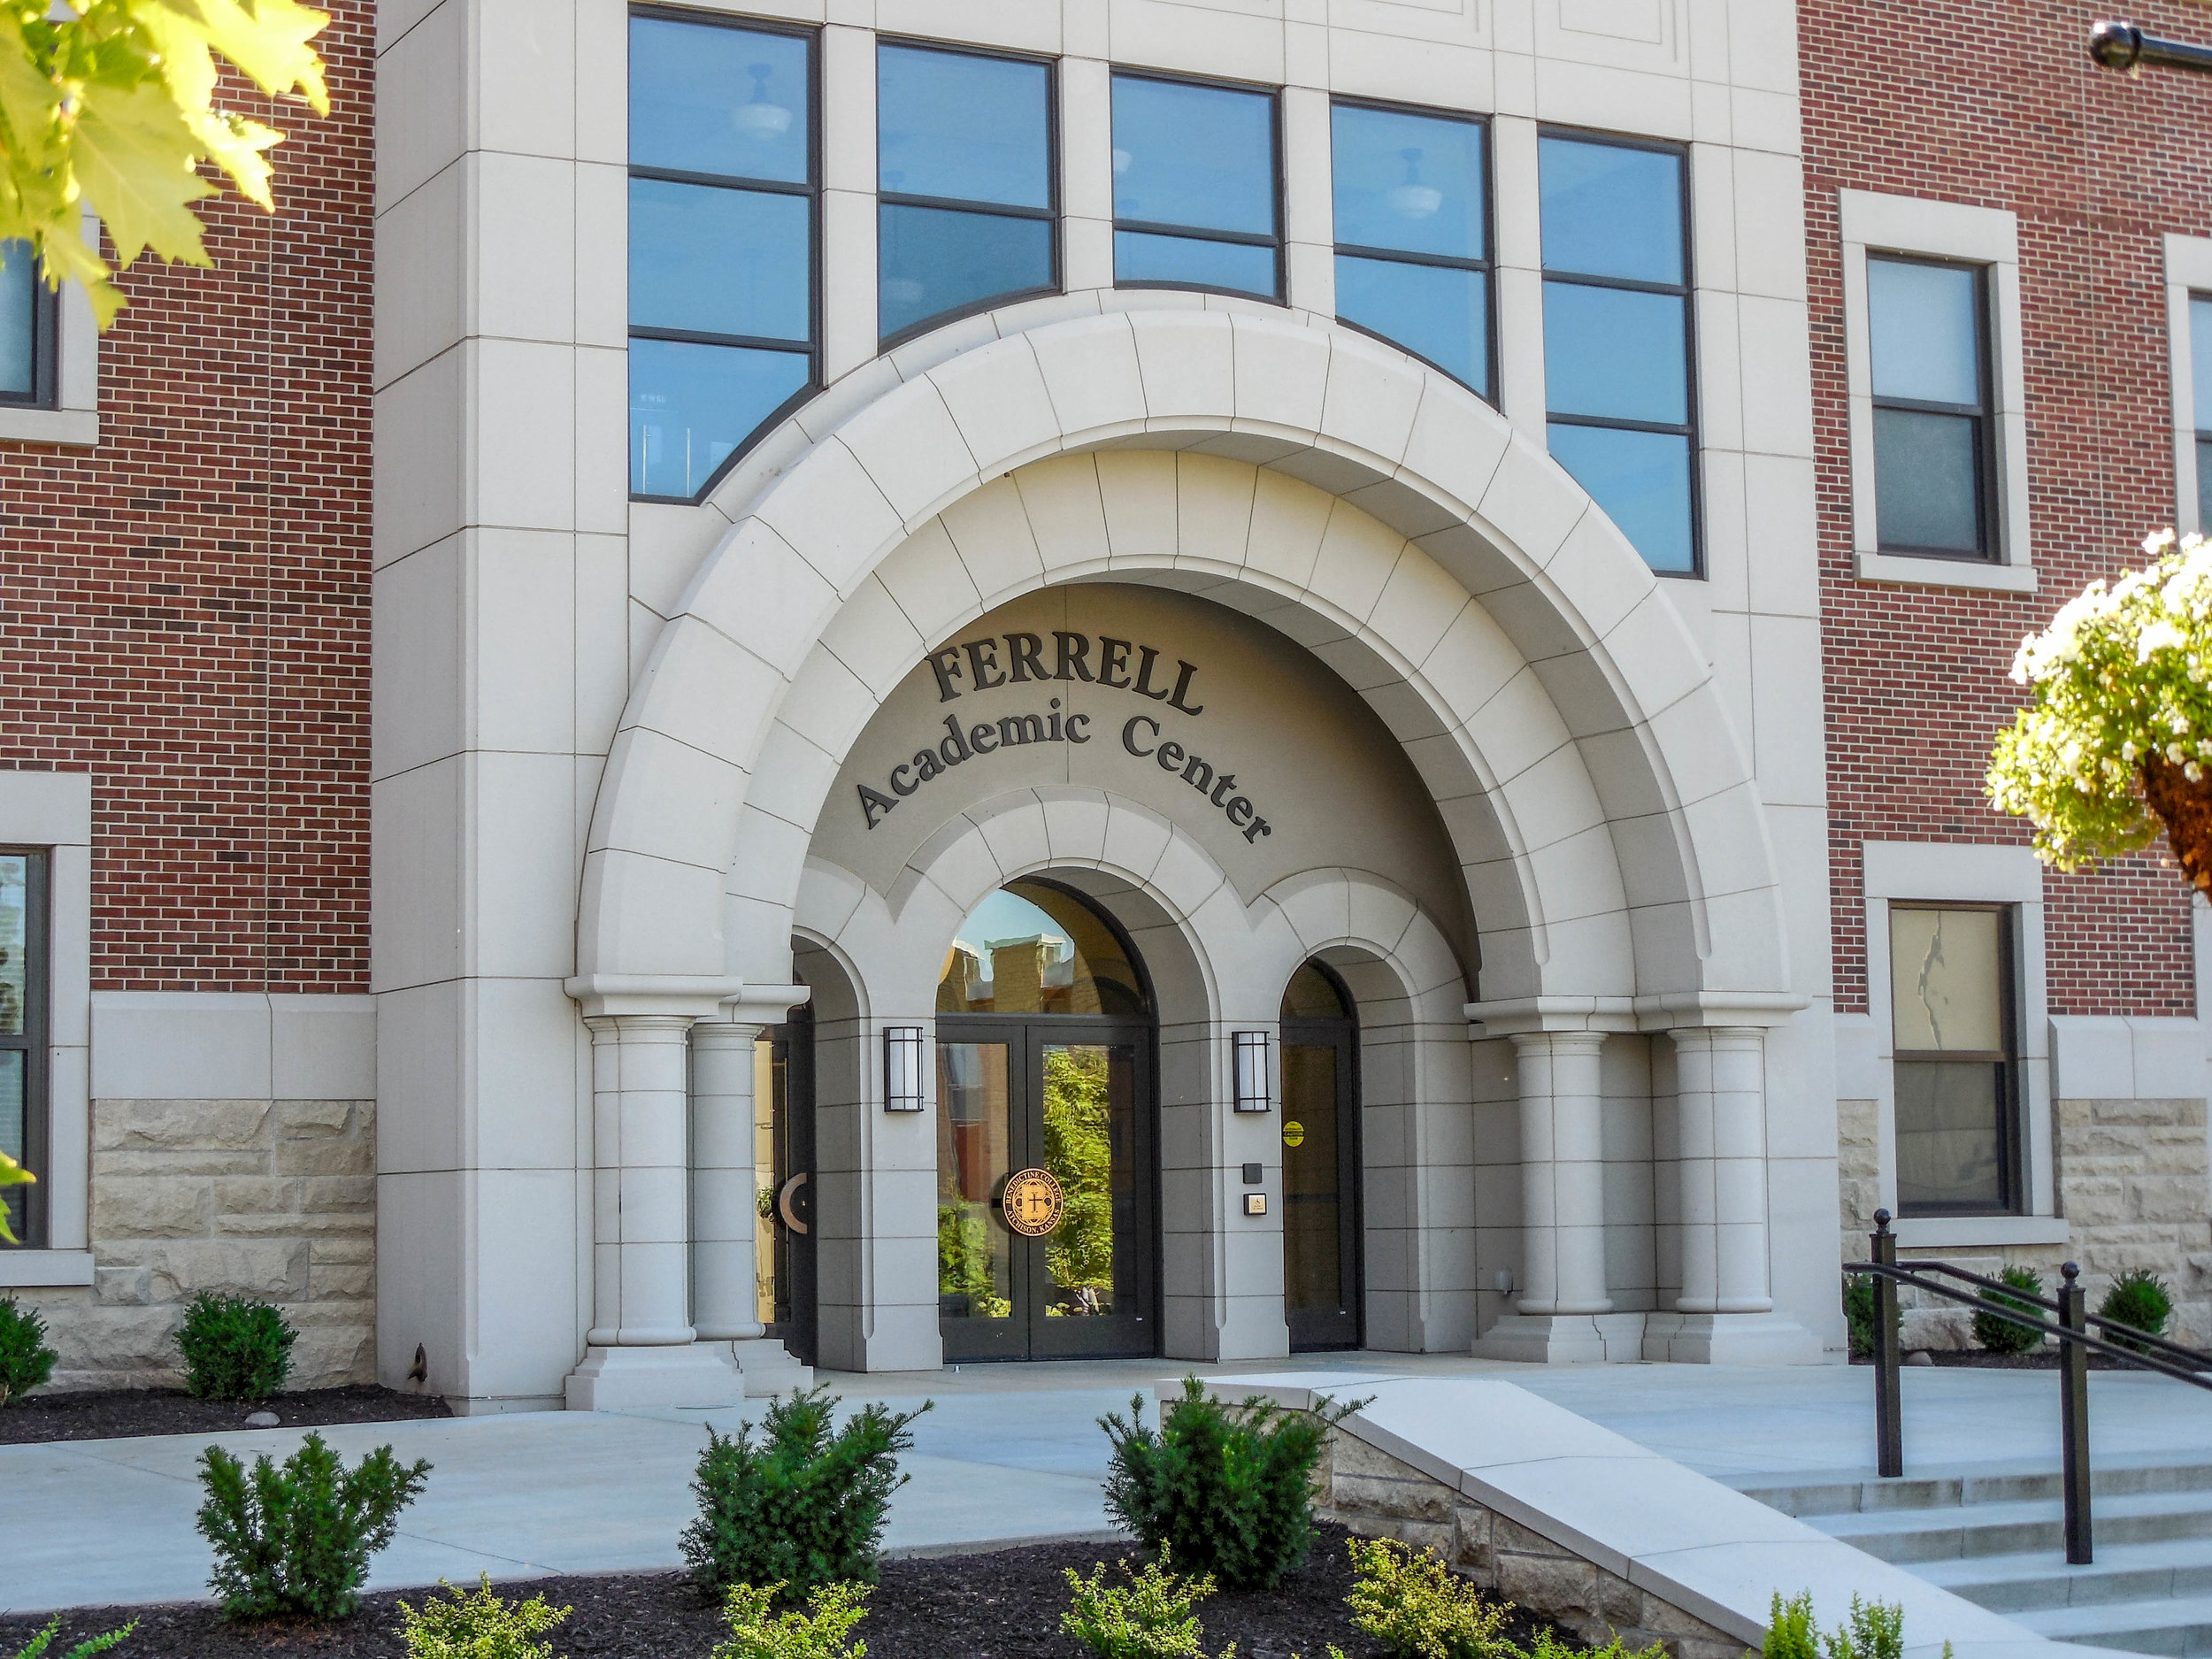 Benedictine College - Ferrel Academic Center